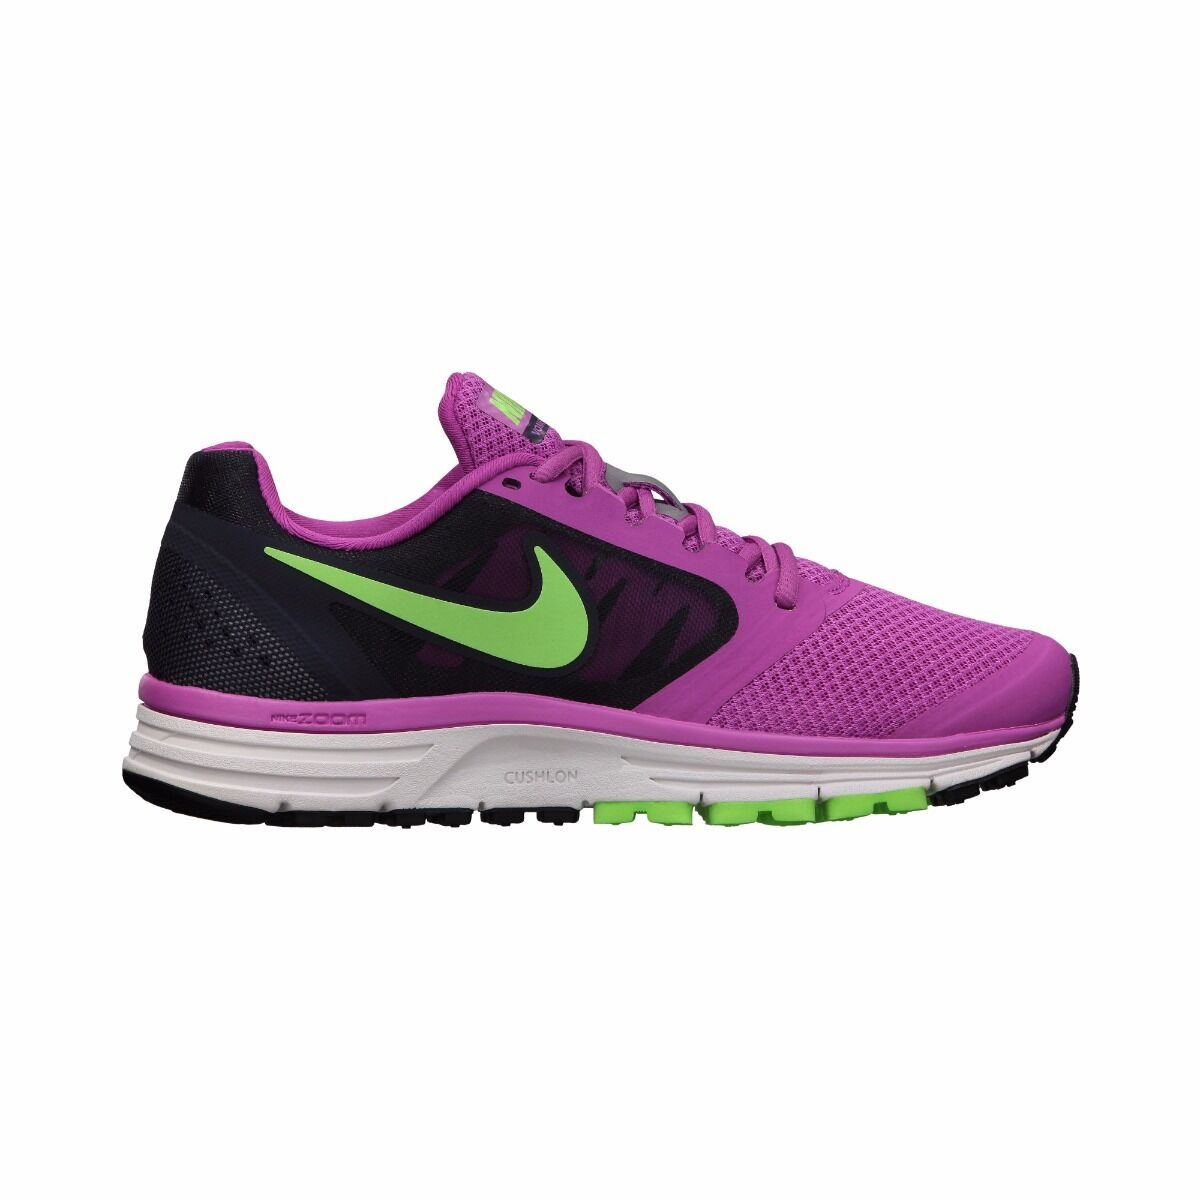 NIKE ZOOM VOMERO + 8 pointure - RU FEMMES 3 - pointure 6 NEUF baskets course Respirable 659a86